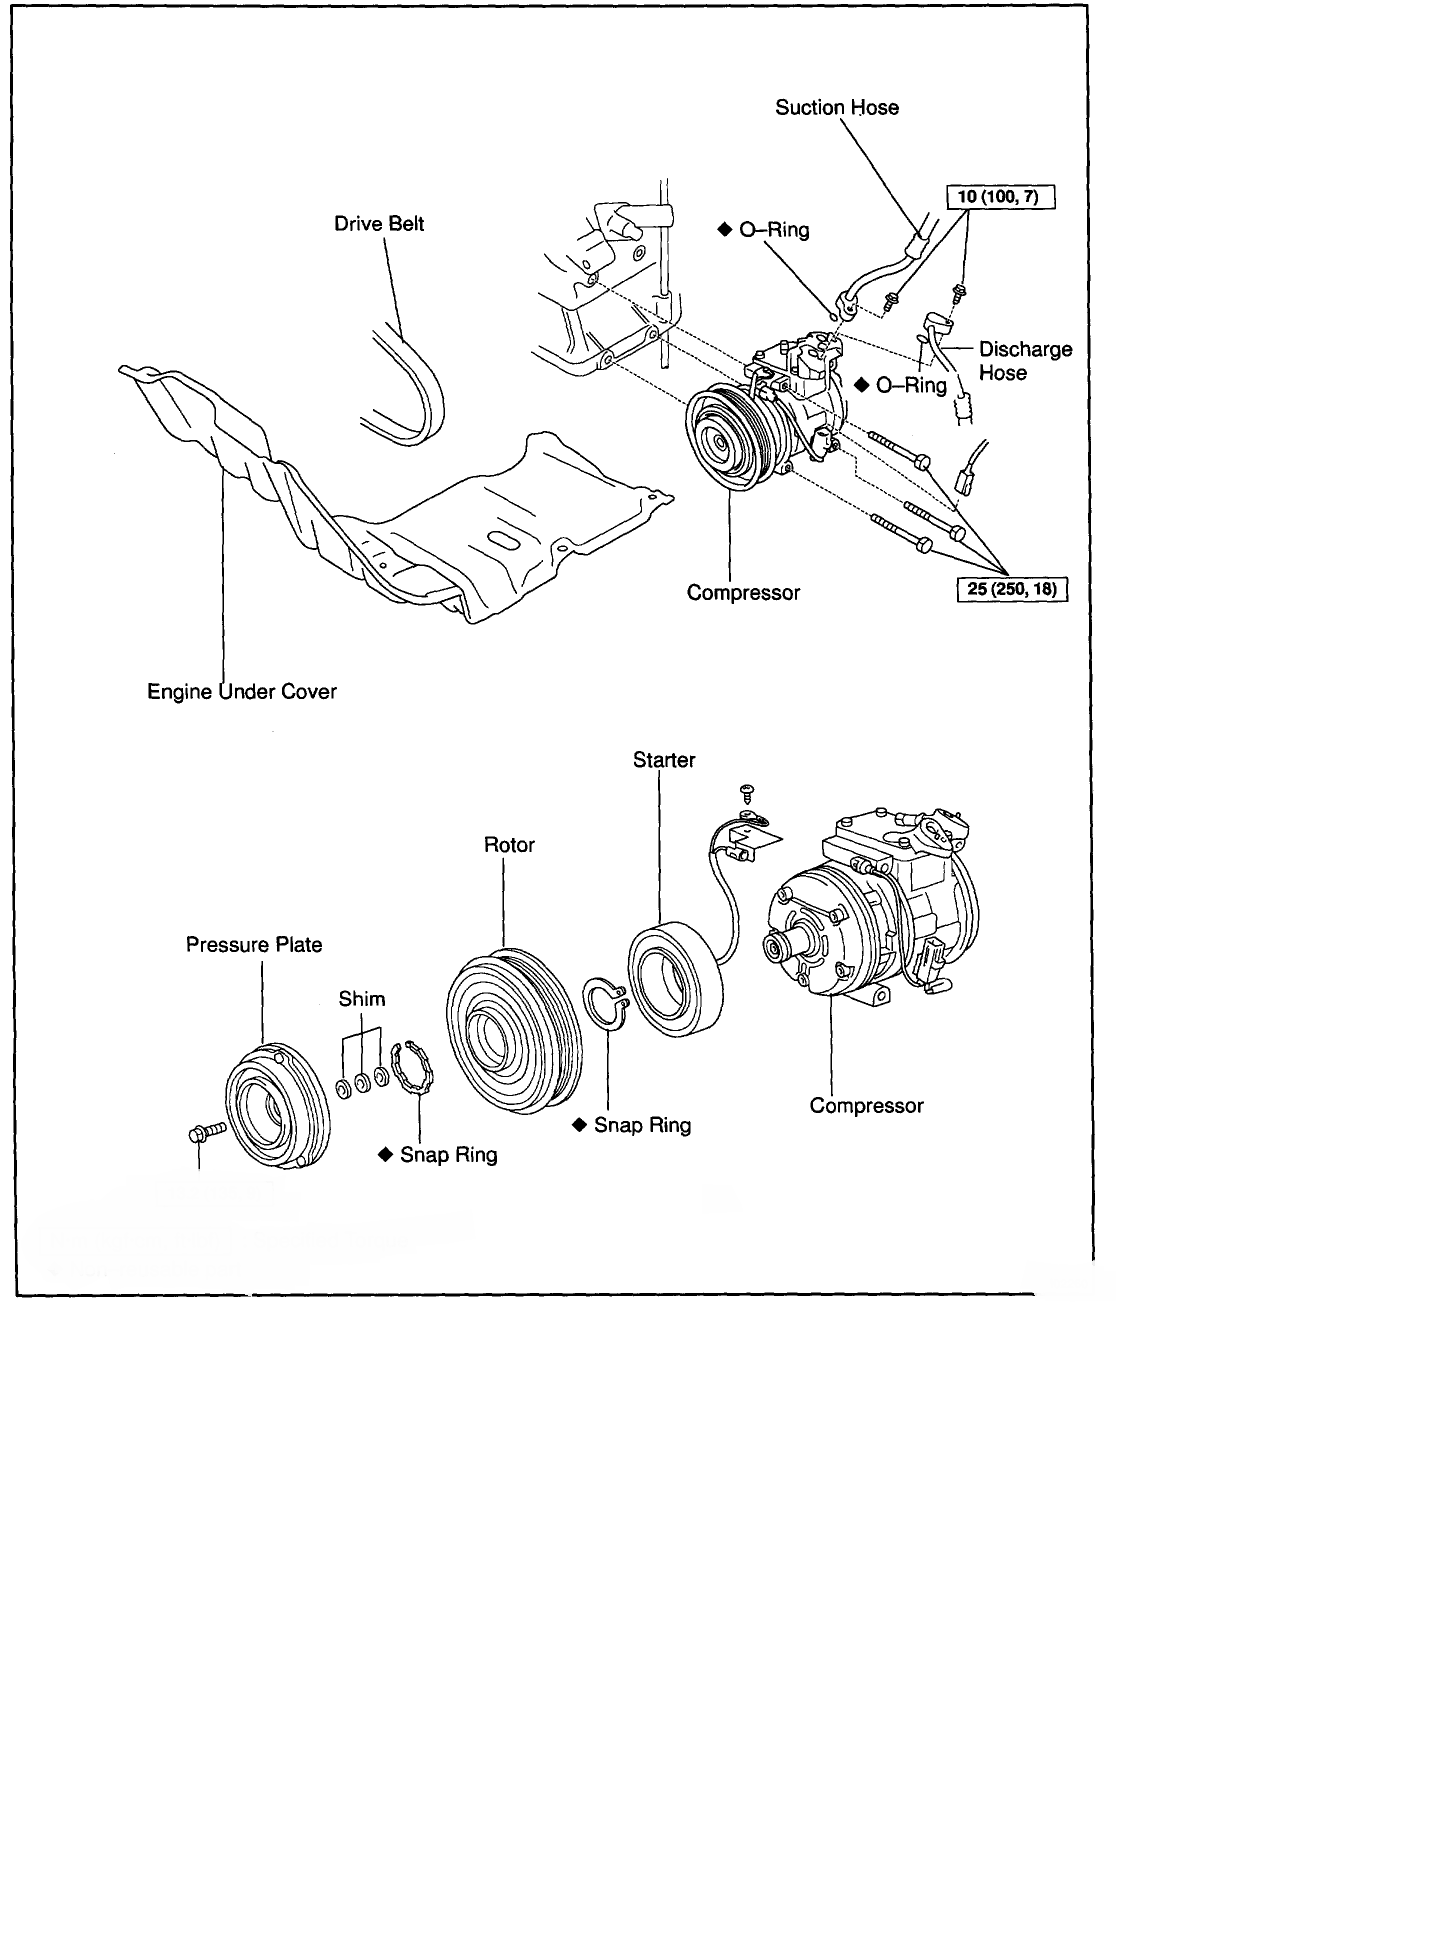 automobile a c compressor wiring diagram a/c issue. the air conditioner in my 2001 corolla has not ... 1994 toyota corolla a c compressor wiring diagram